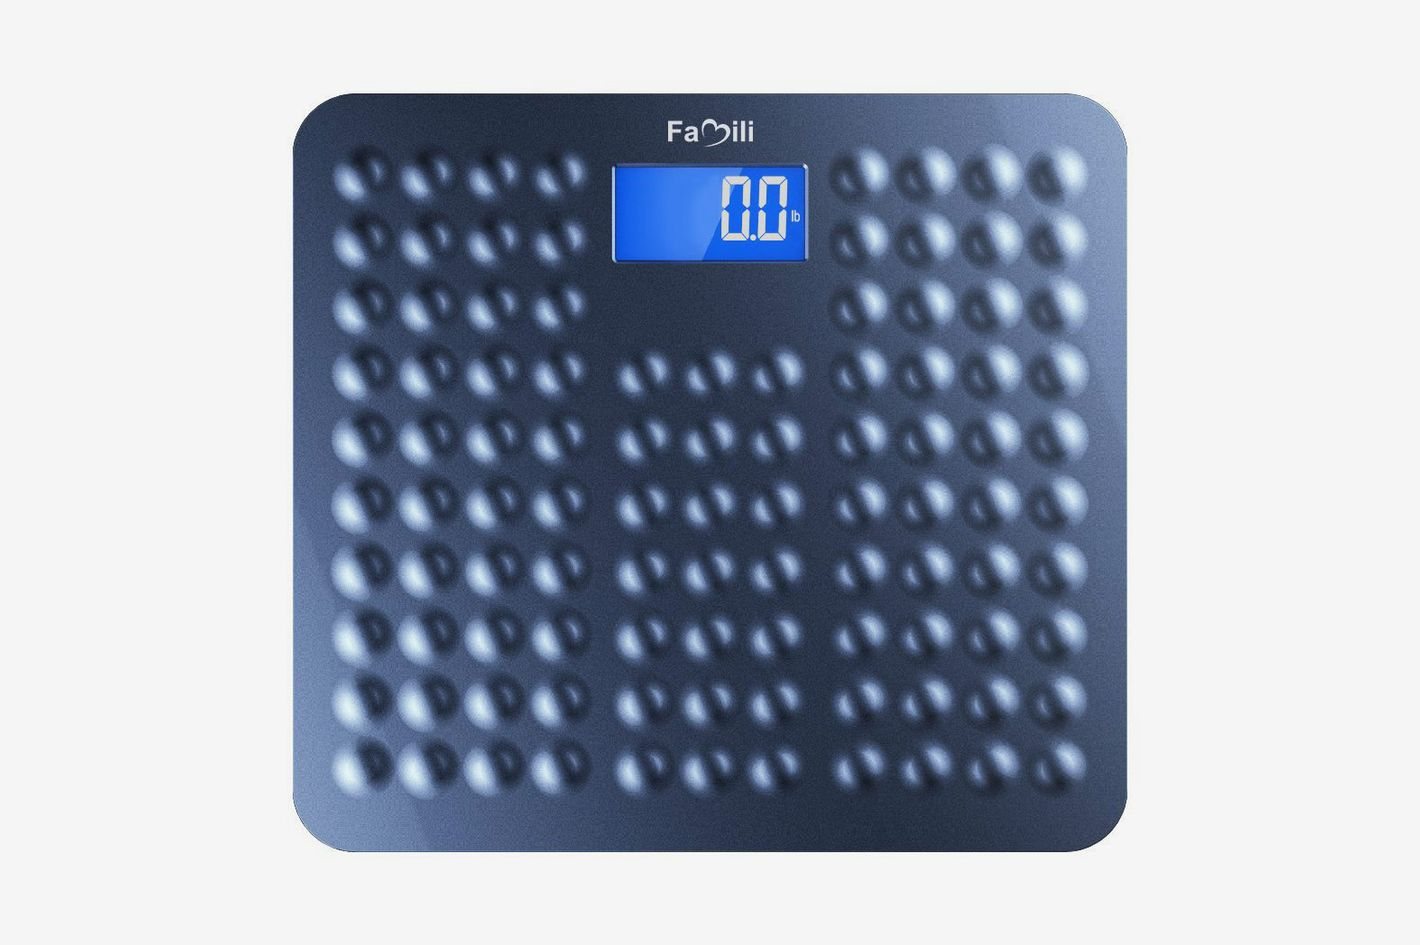 Famili 271b Bathroom Scale Digital Body Weight